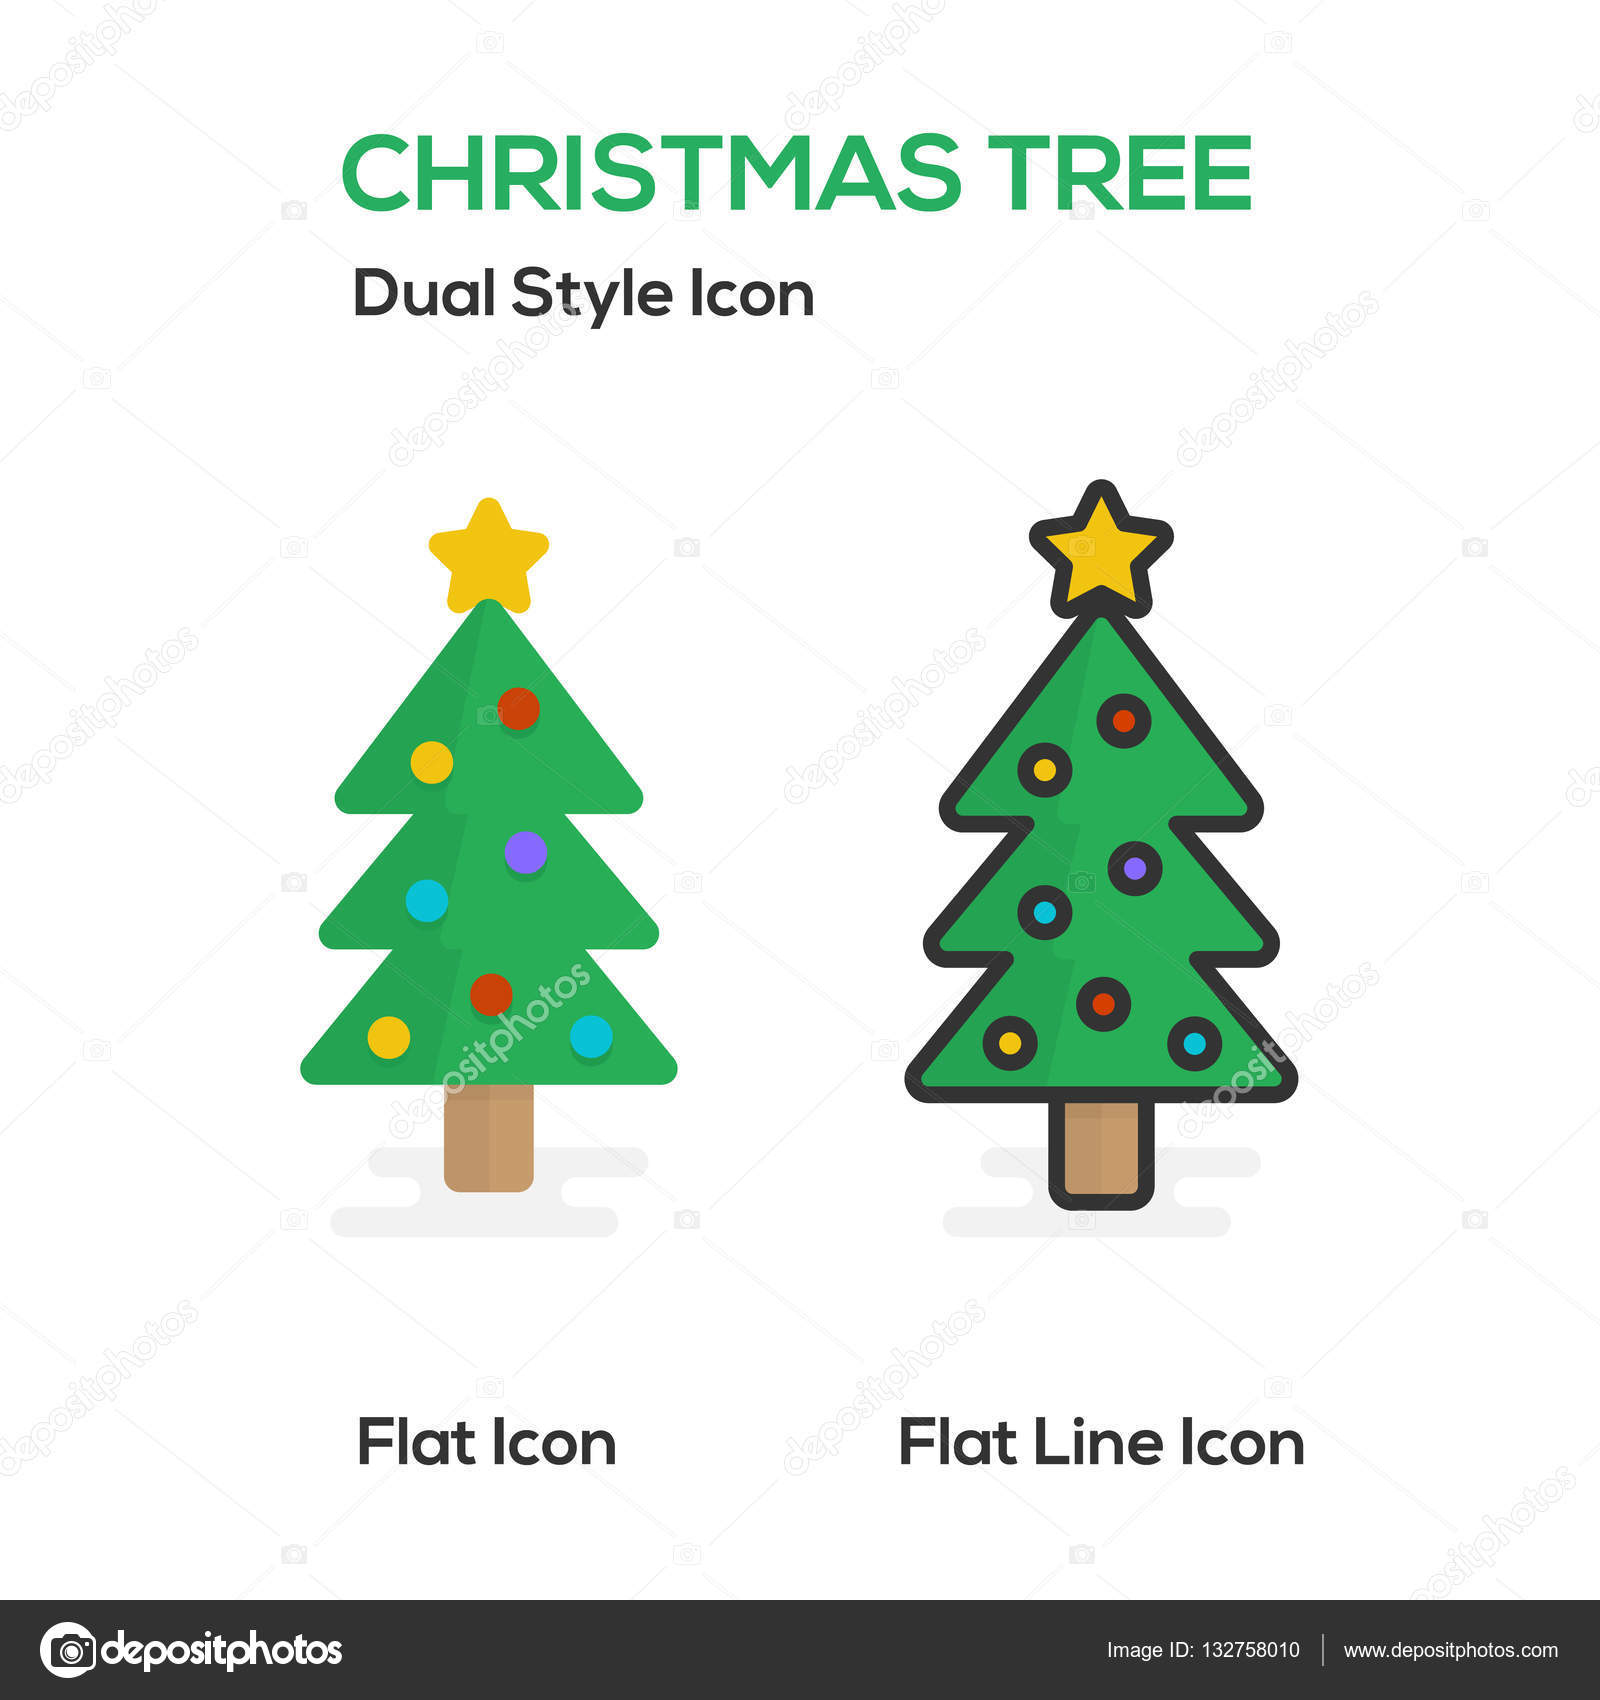 Christmas Tree Flat Icon And Flat Line Icon. — Stock Vector ...